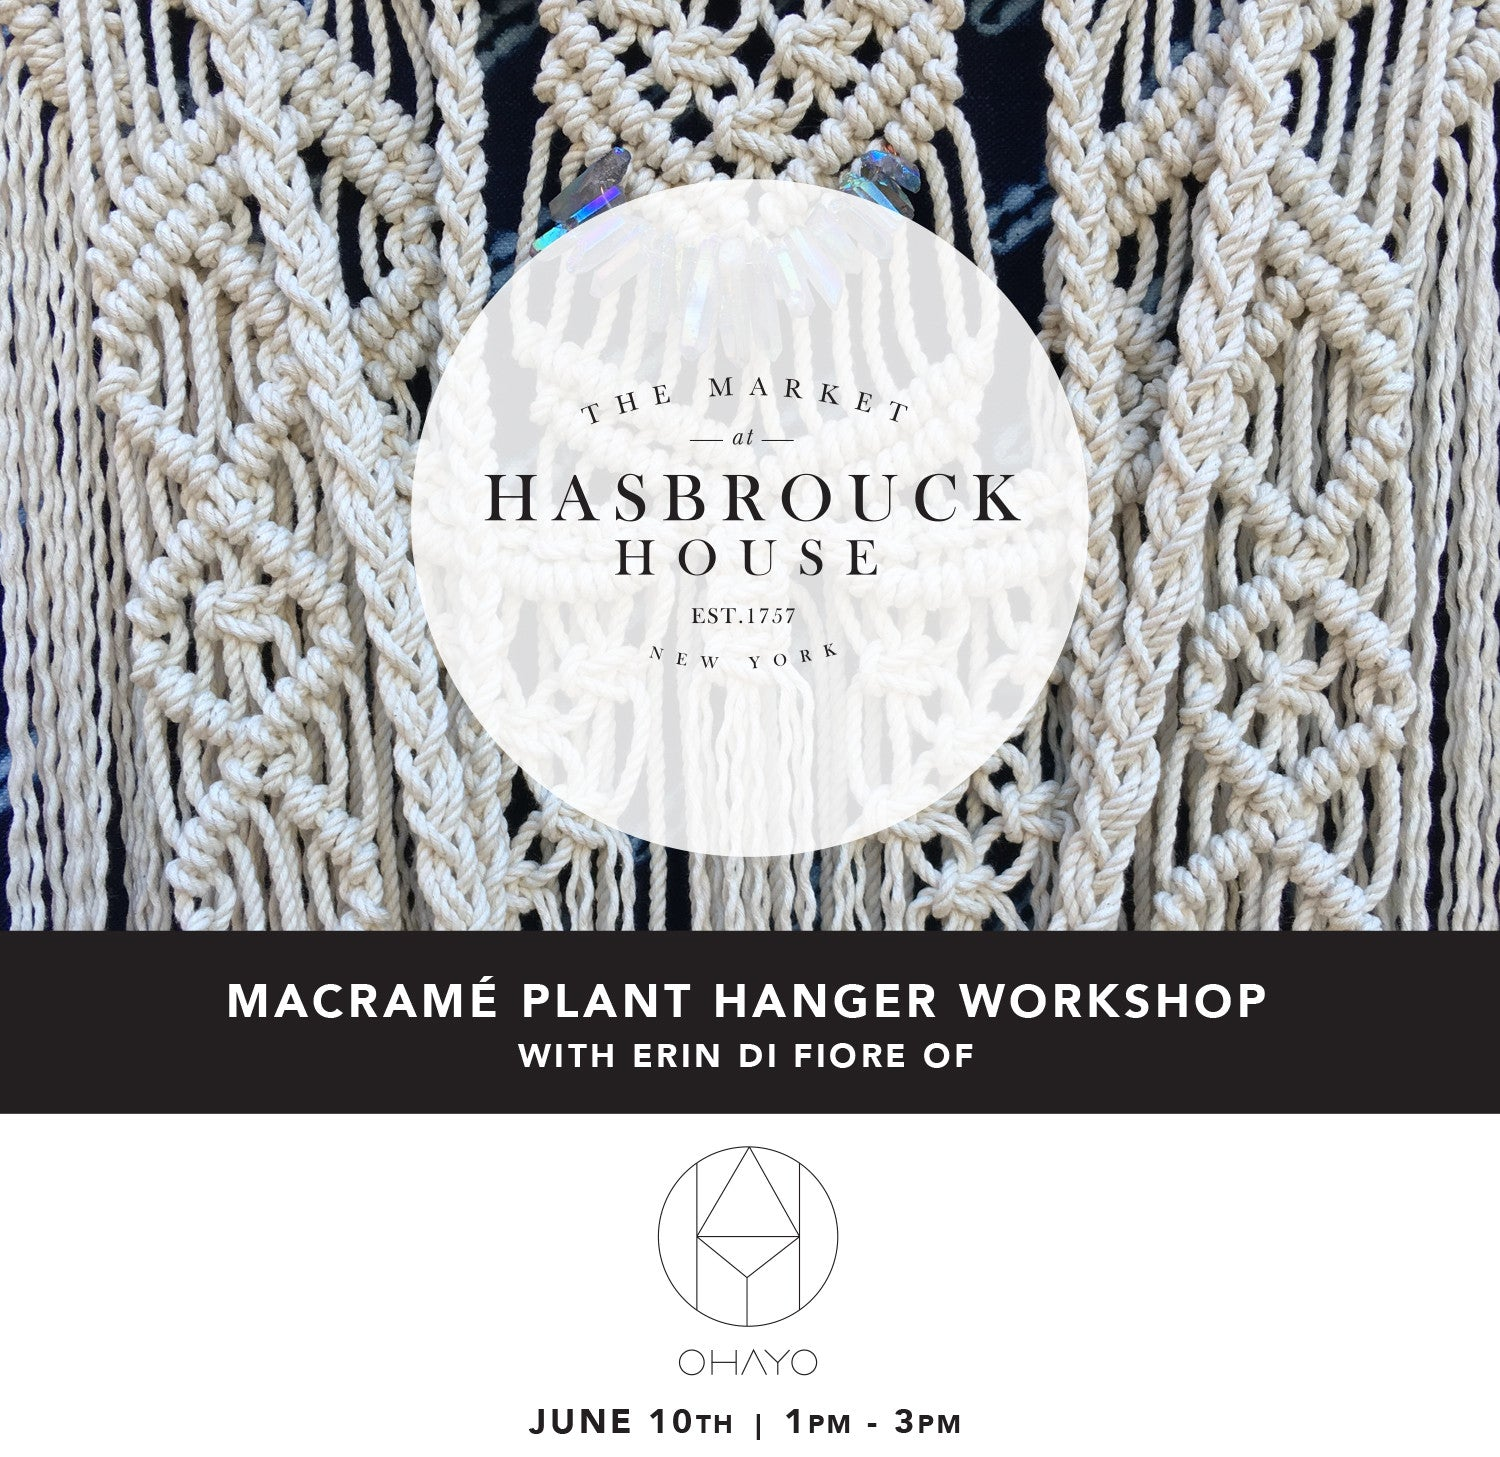 MACRAMÉ PLANT HANGER WORKSHOP | THE MARKET AT HASBROUCK HOUSE